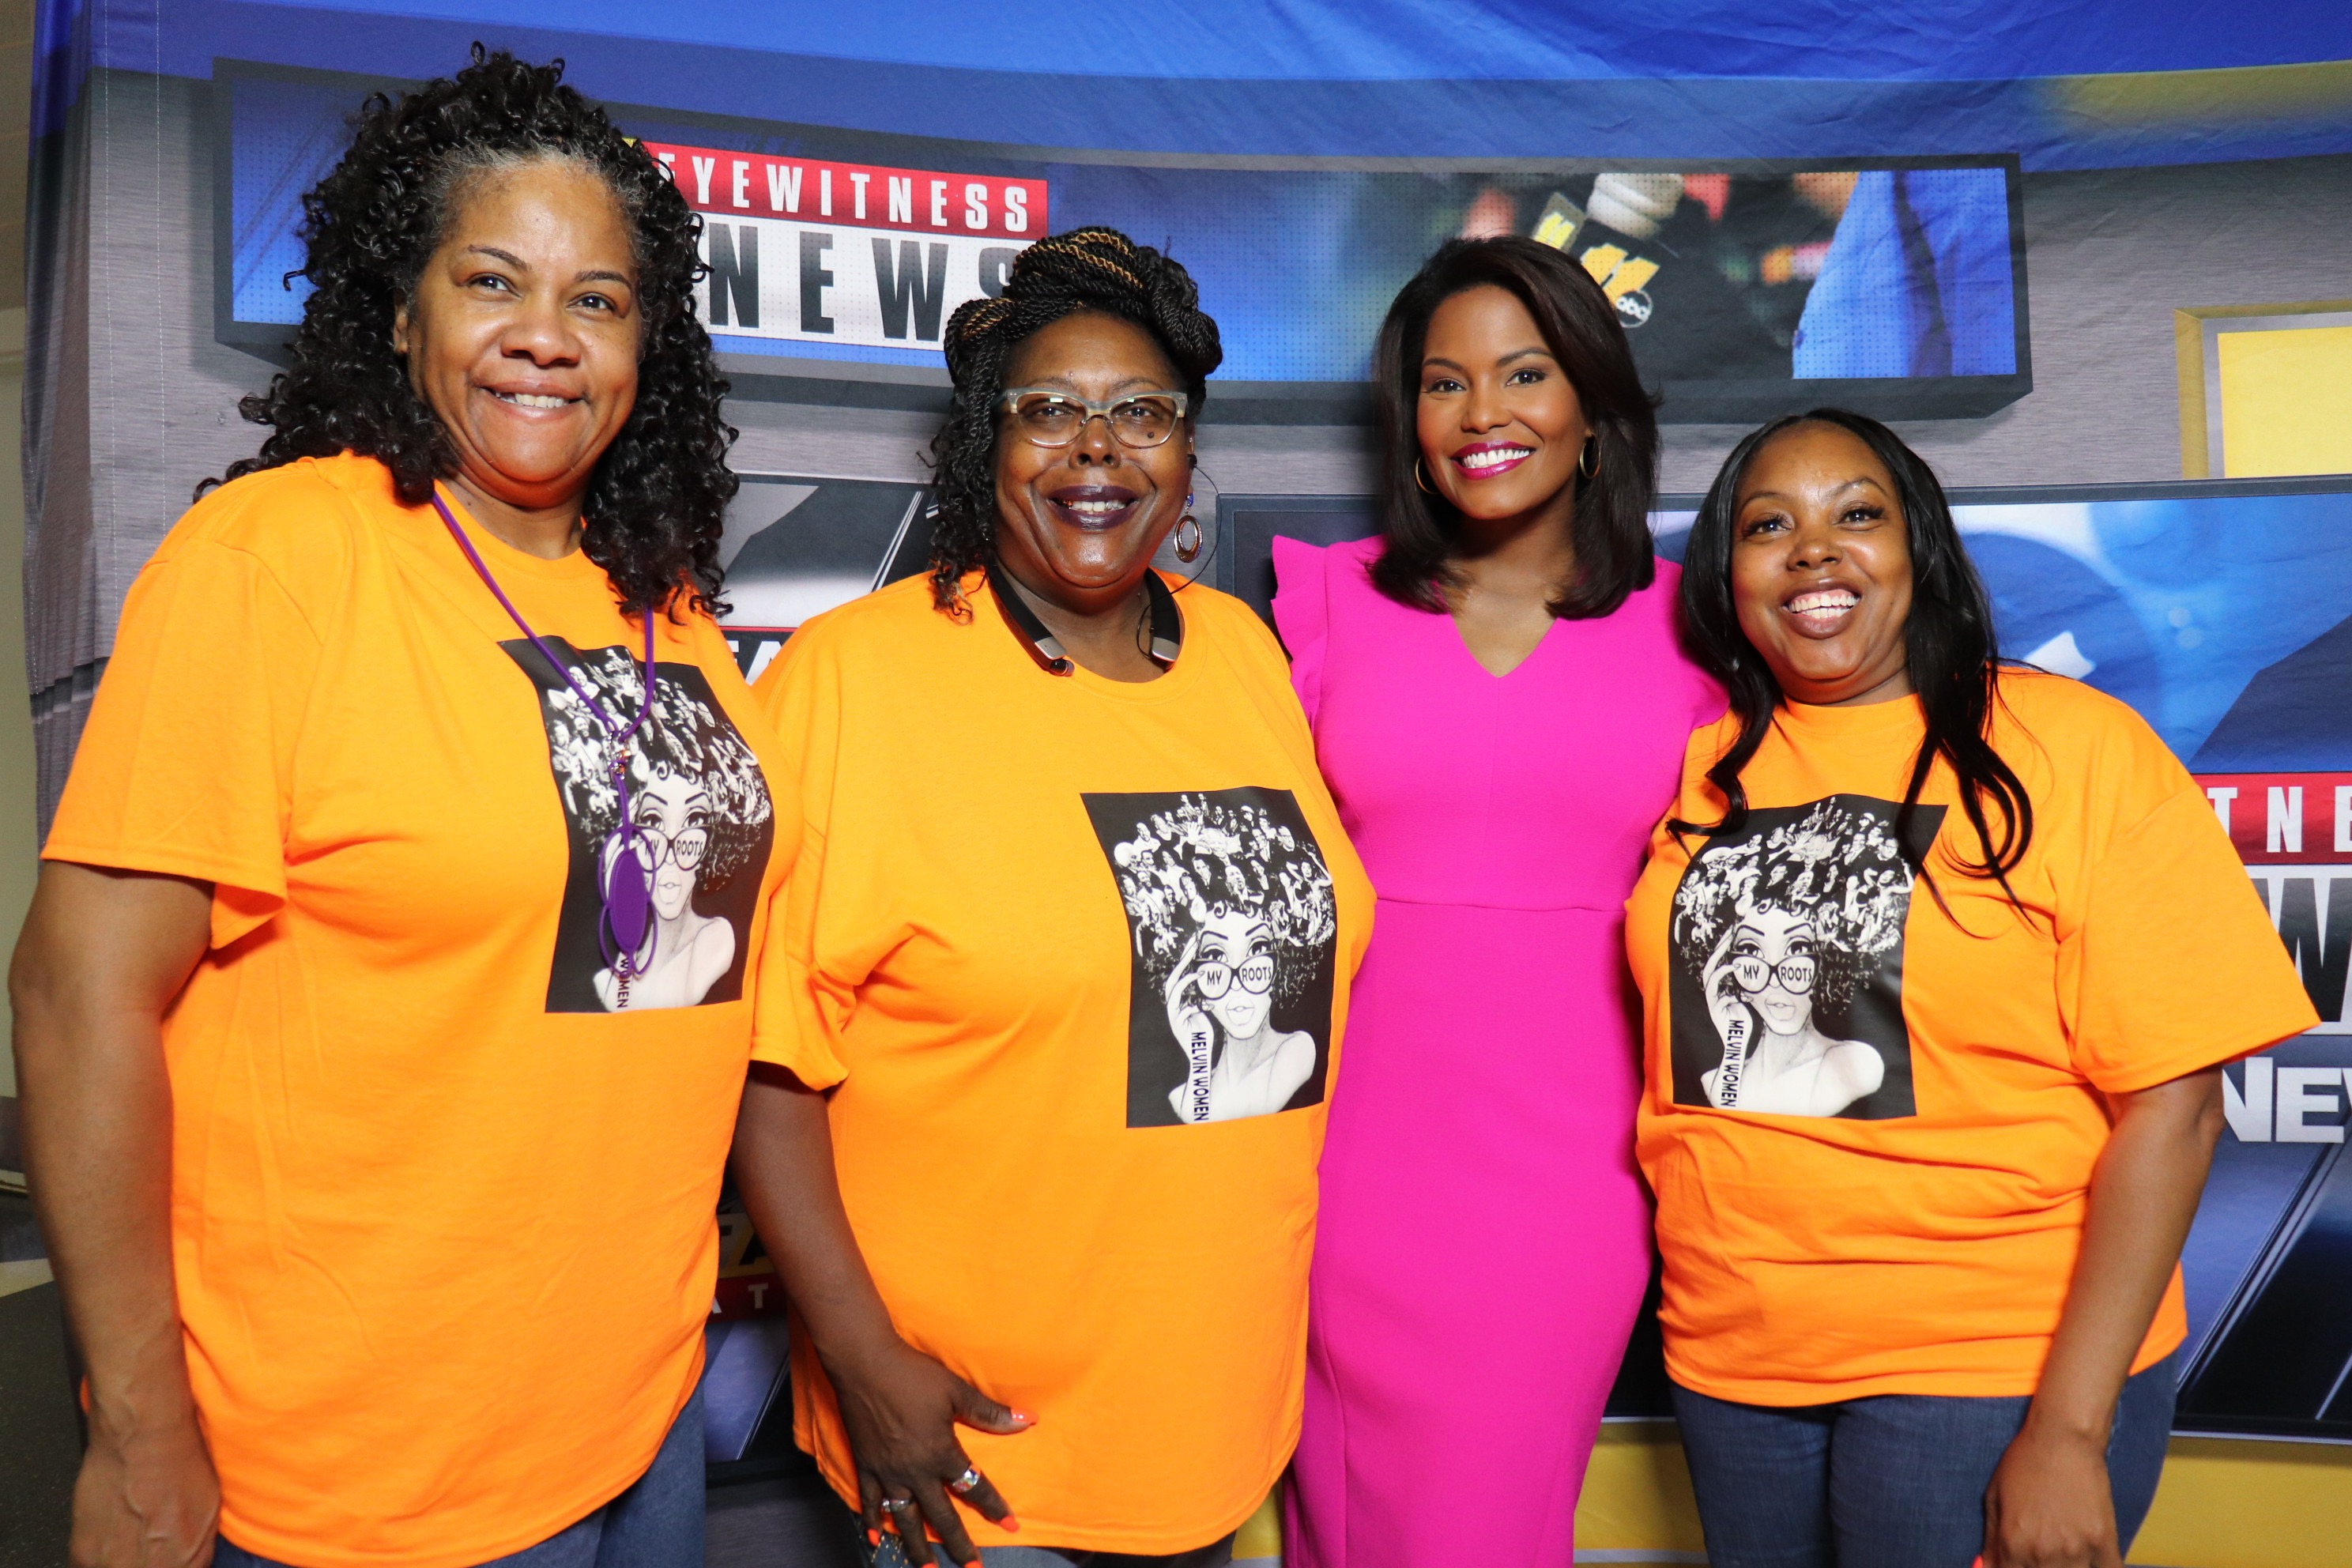 <div class='meta'><div class='origin-logo' data-origin='WTVD'></div><span class='caption-text' data-credit=''>Scenes from the Women's Empowerment event at PNC Arena in Raleigh on Saturday.</span></div>